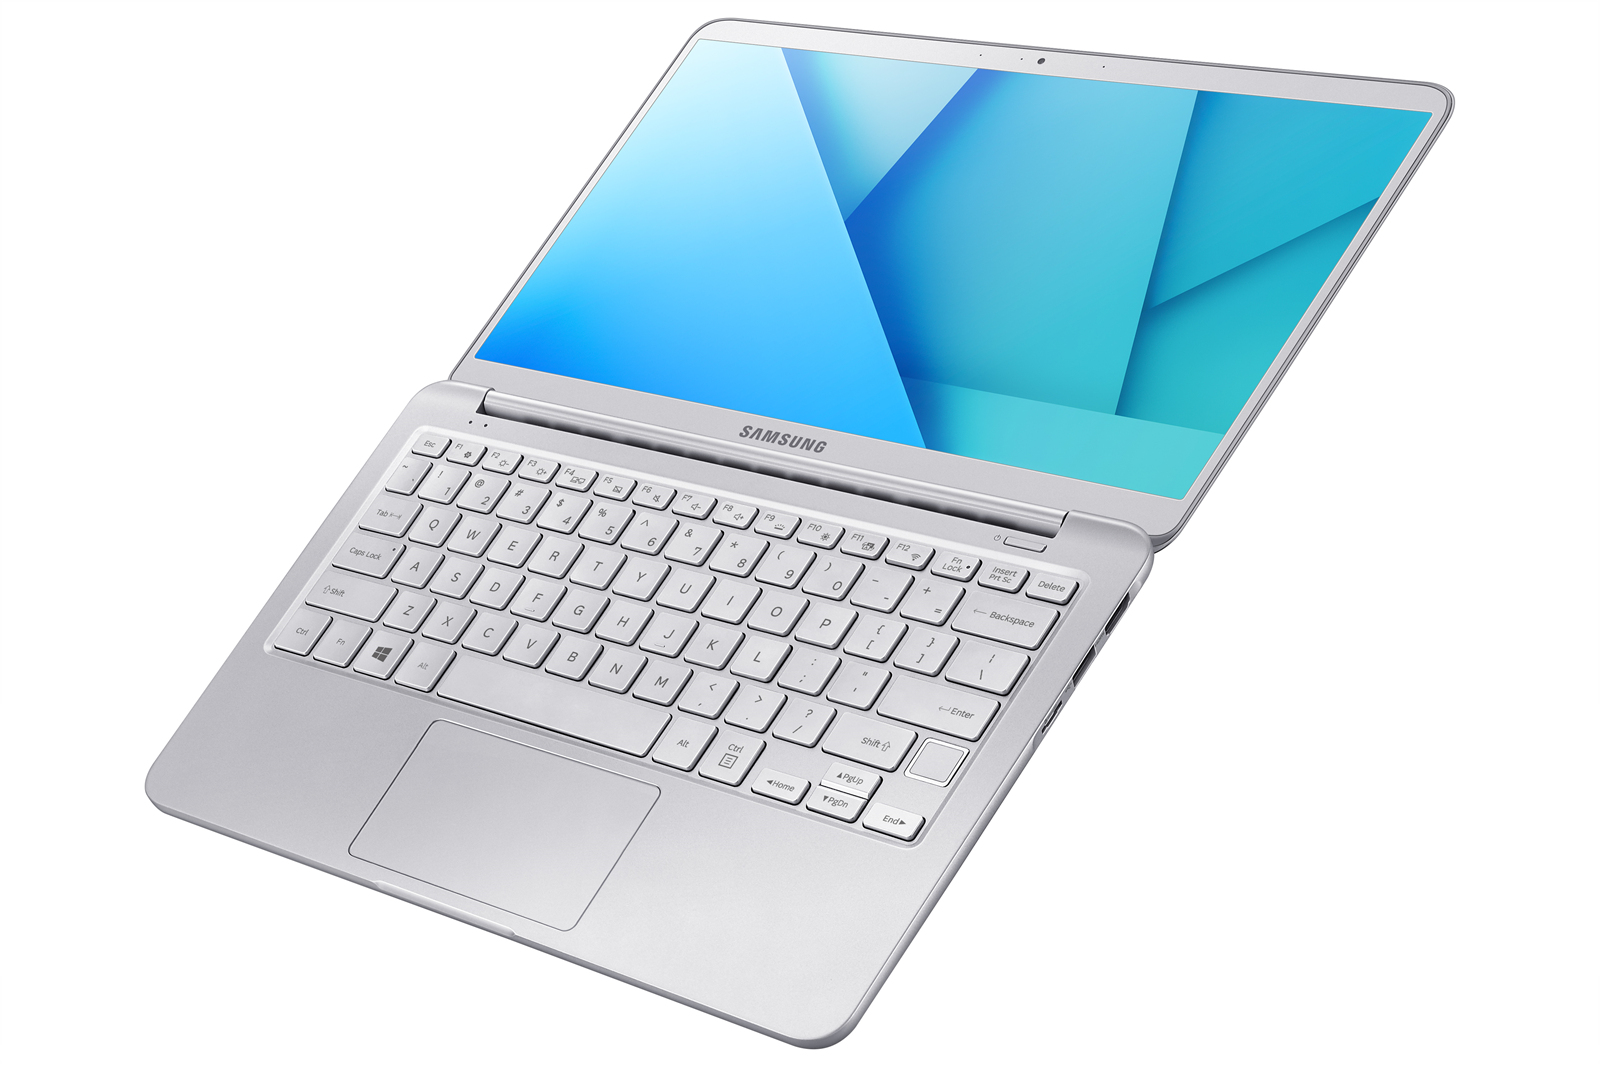 Samsung Notebook 9 come with better CPUs and desktop-level storage